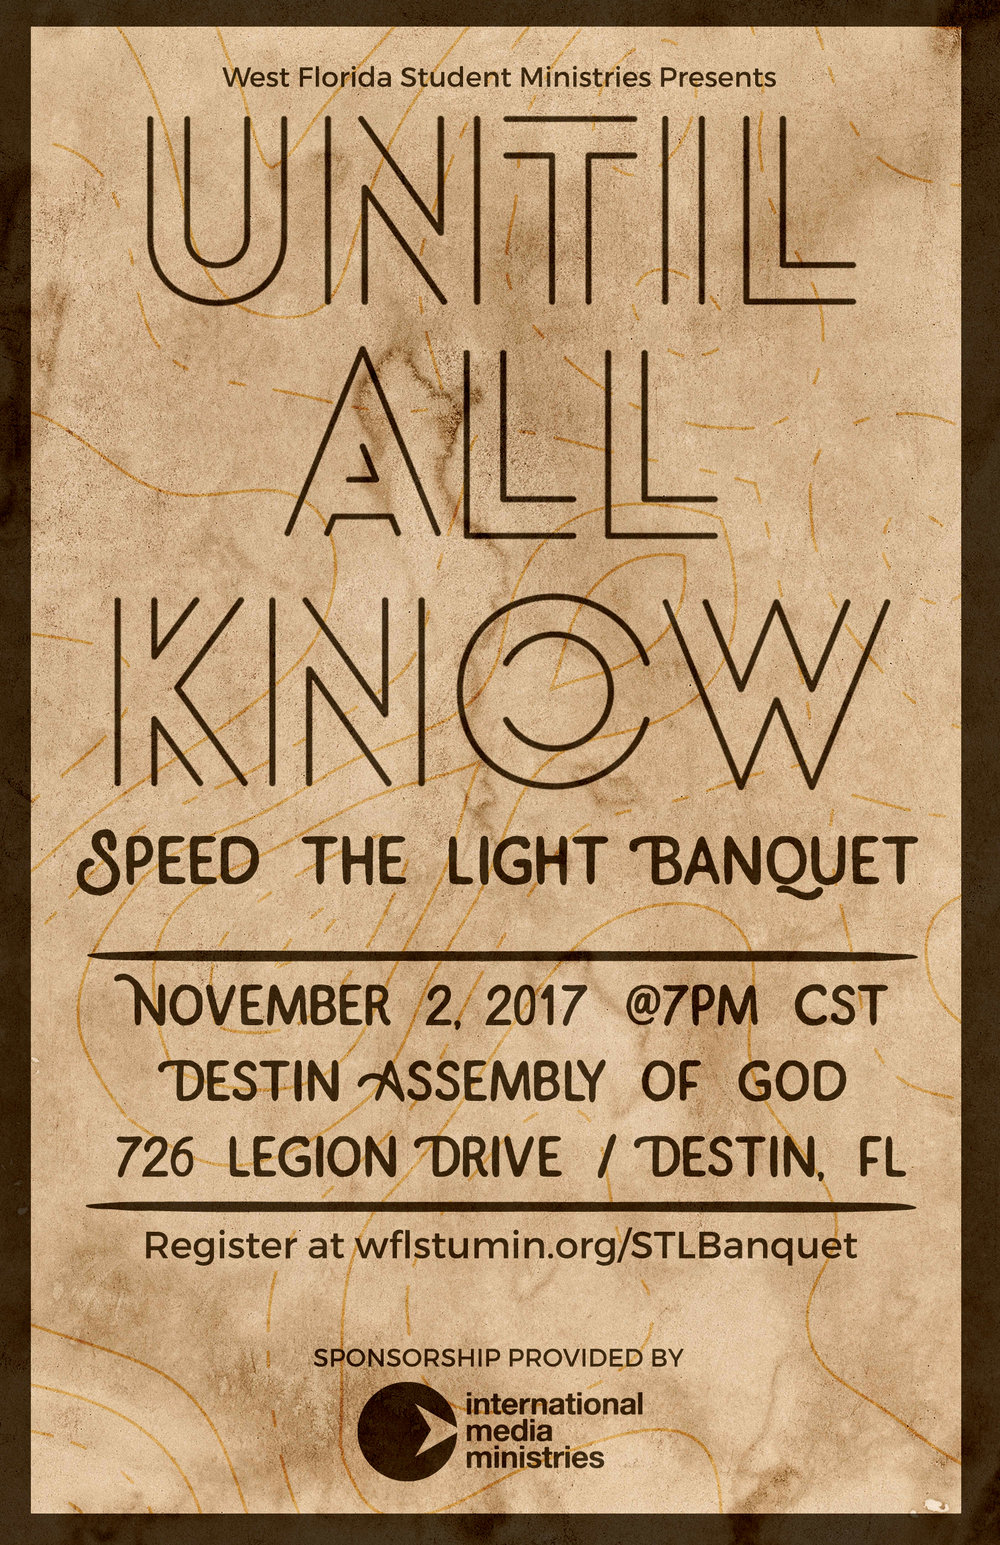 Speed the Light Banquet 2017 Invitation2.jpg